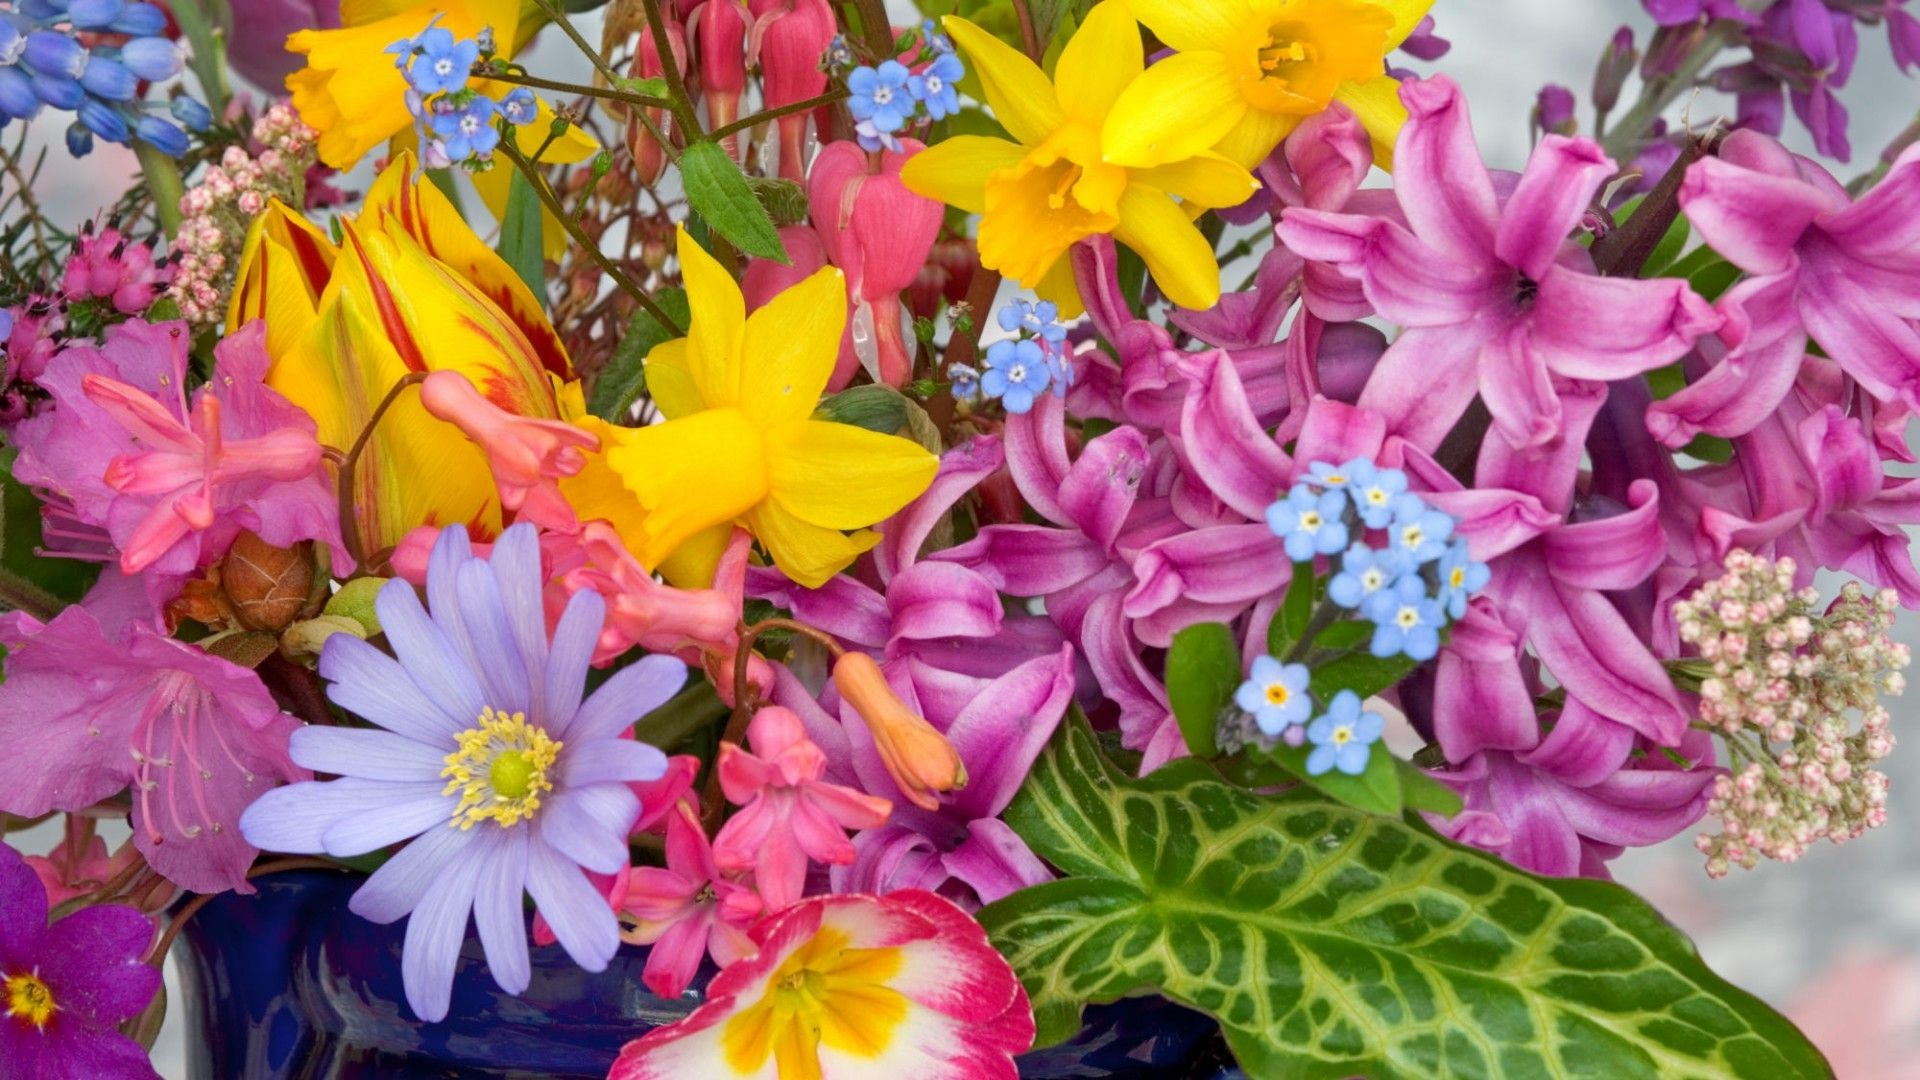 Happy Spring Day Background HD Wallpaper Of Event - Colorful flower garden background